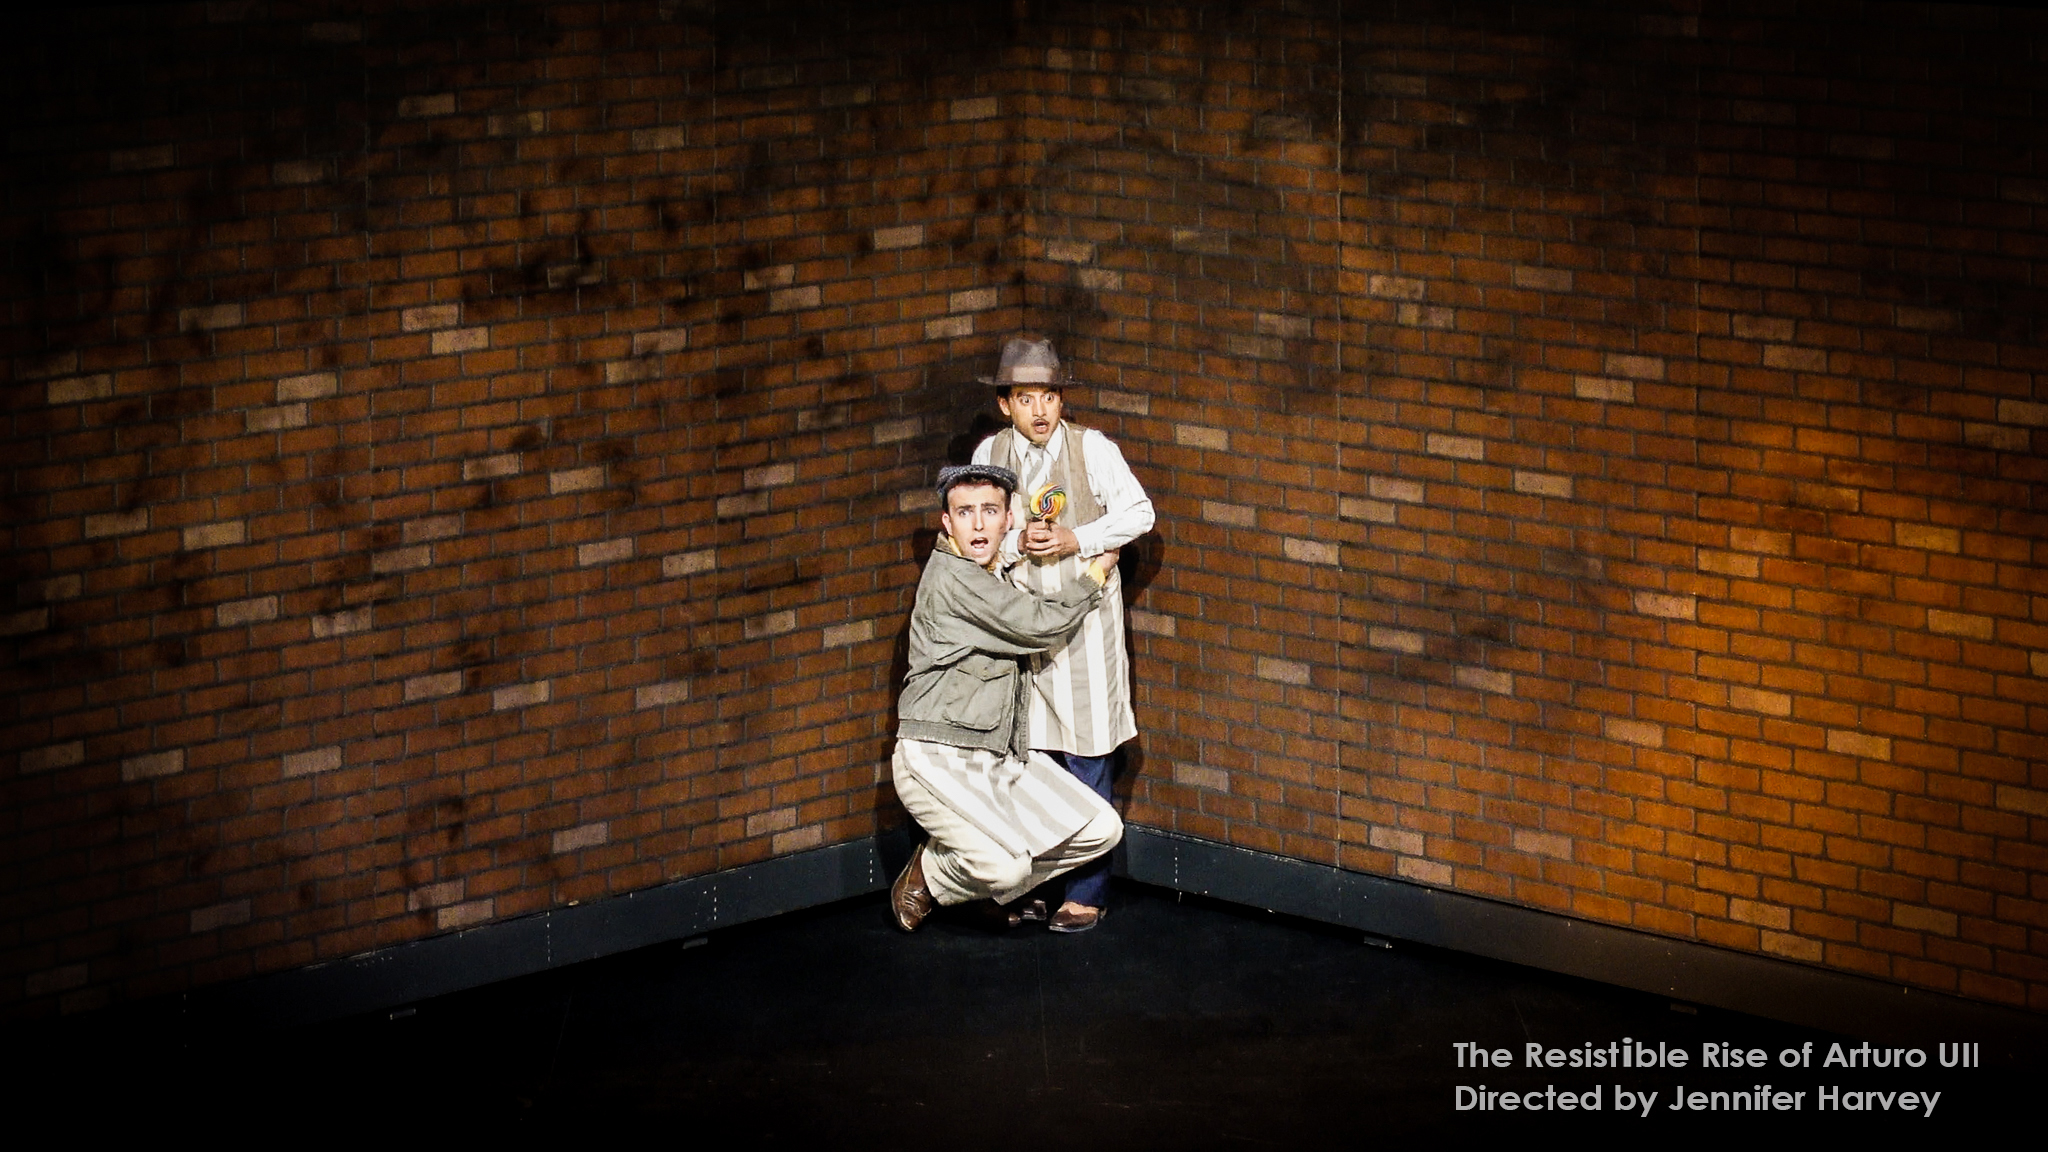 The Resistible Rise of Arturo UI - Directed by Jennifer Harvey